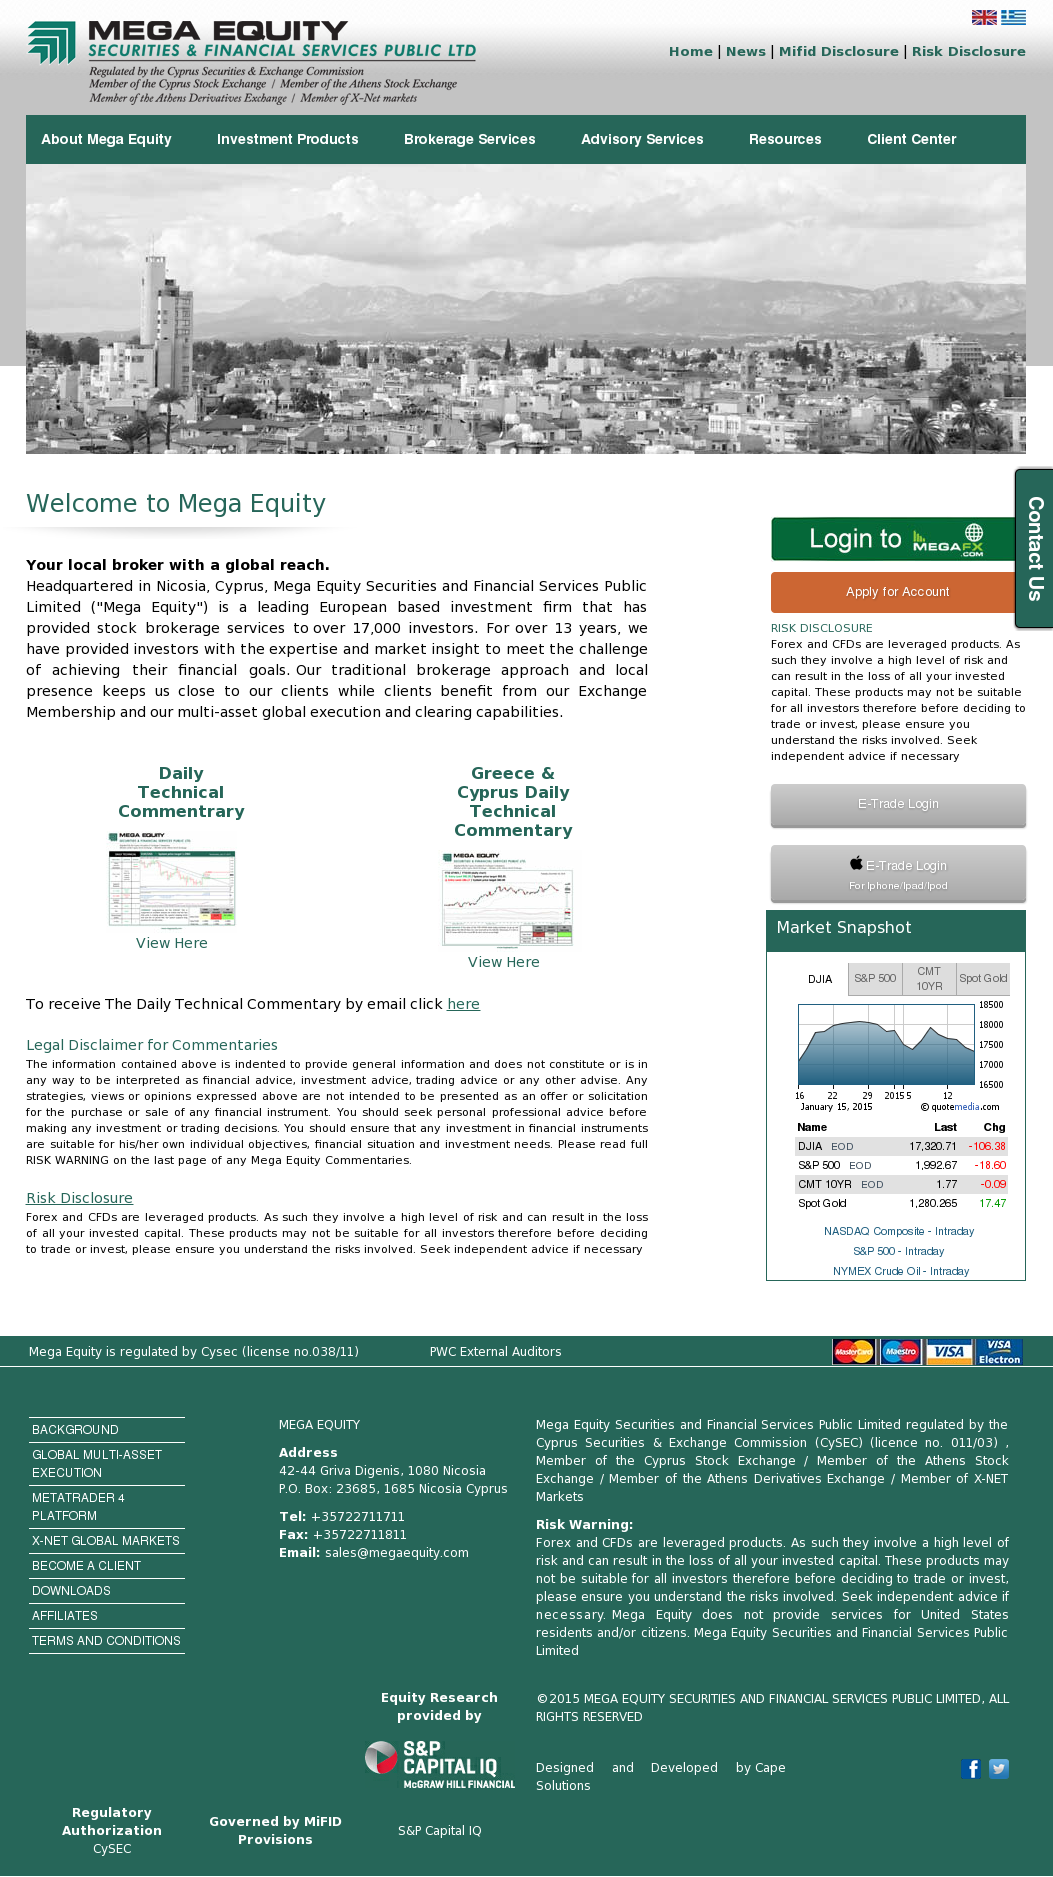 Mega Equity Securities And Financial Services Public